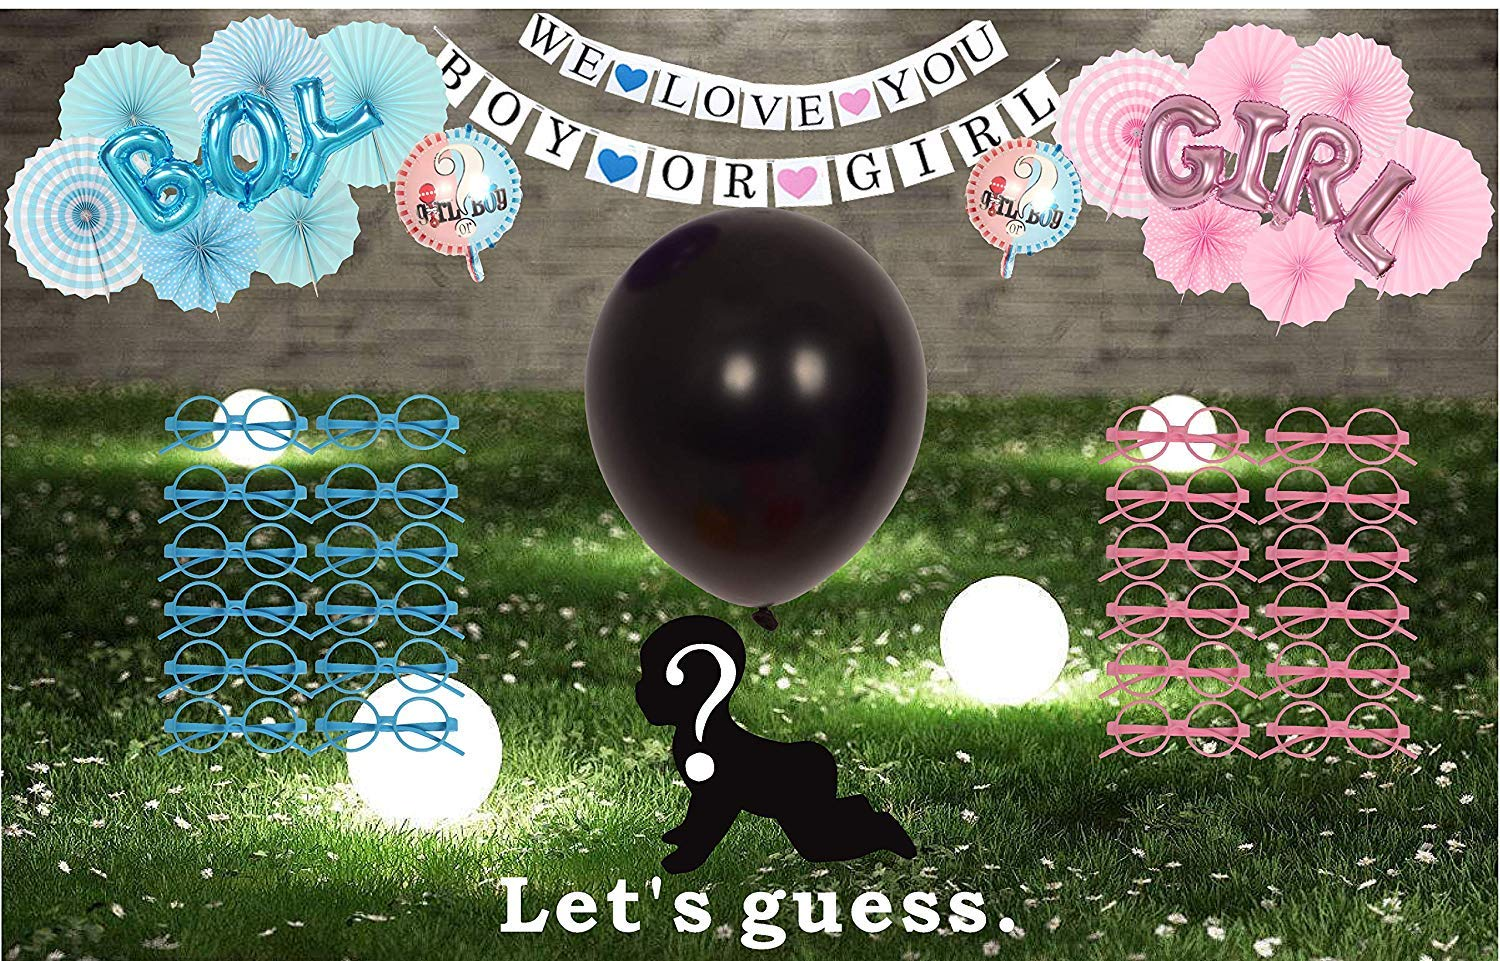 Gender-Reveal-Party-Supplies-Baby-Shower-Boy-or-Girl-Balloons-and-Banner-Kit-45-Pieces-36-Gender-Reveal-Balloon-with-Confetii-Pink-and-Blue-Reveal-Party-Supplies-Set-Celebrate-Gender-Revea